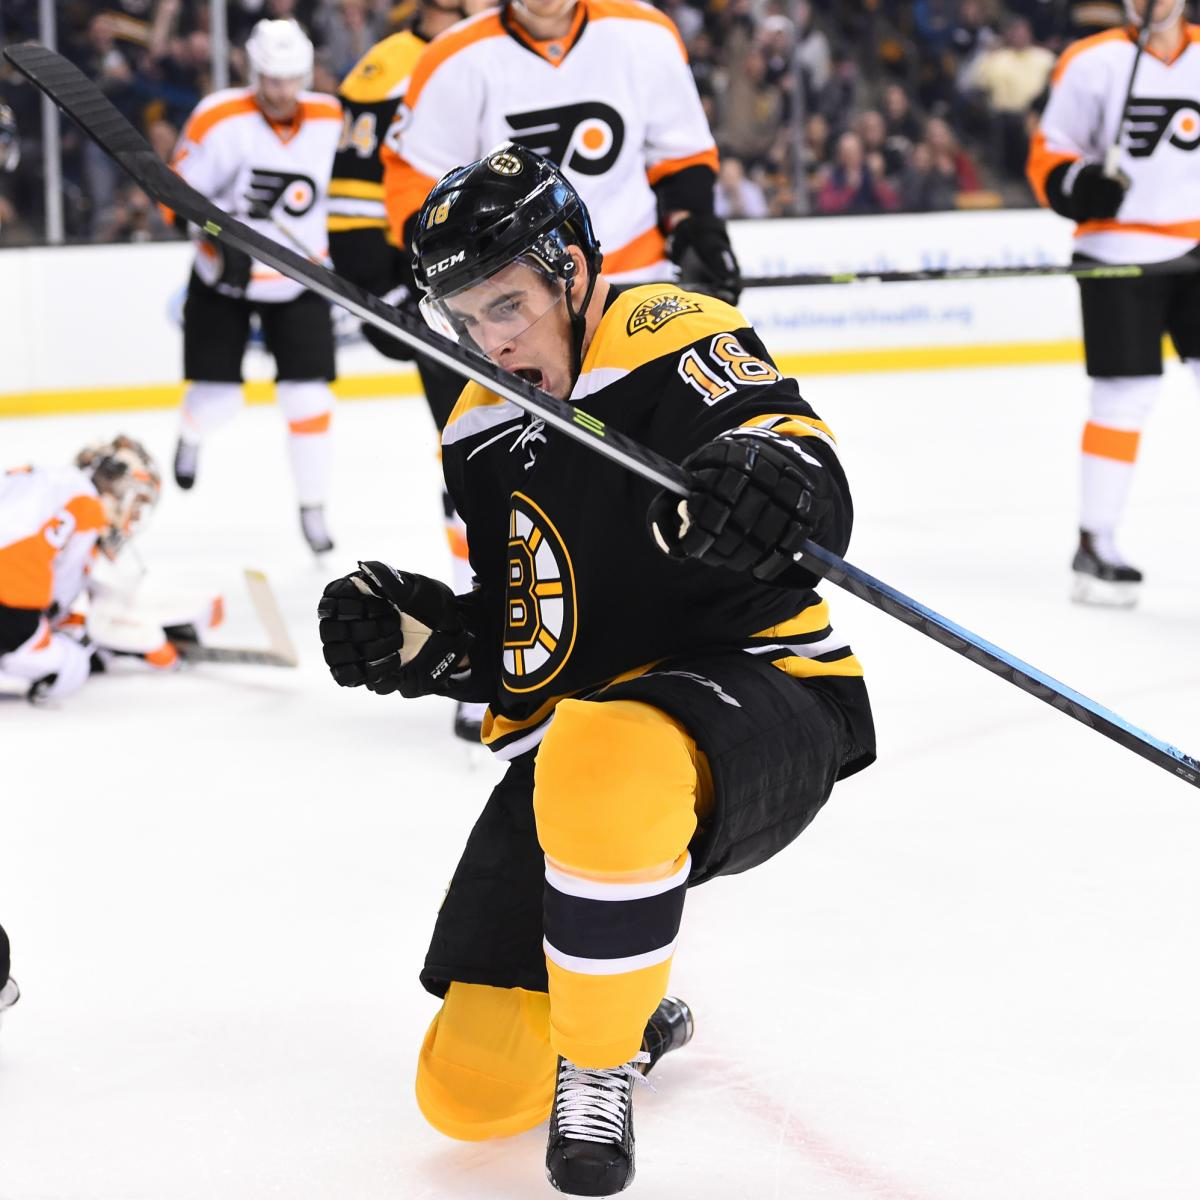 Flyers Vs Bruins: Live Score, Highlights And Reaction